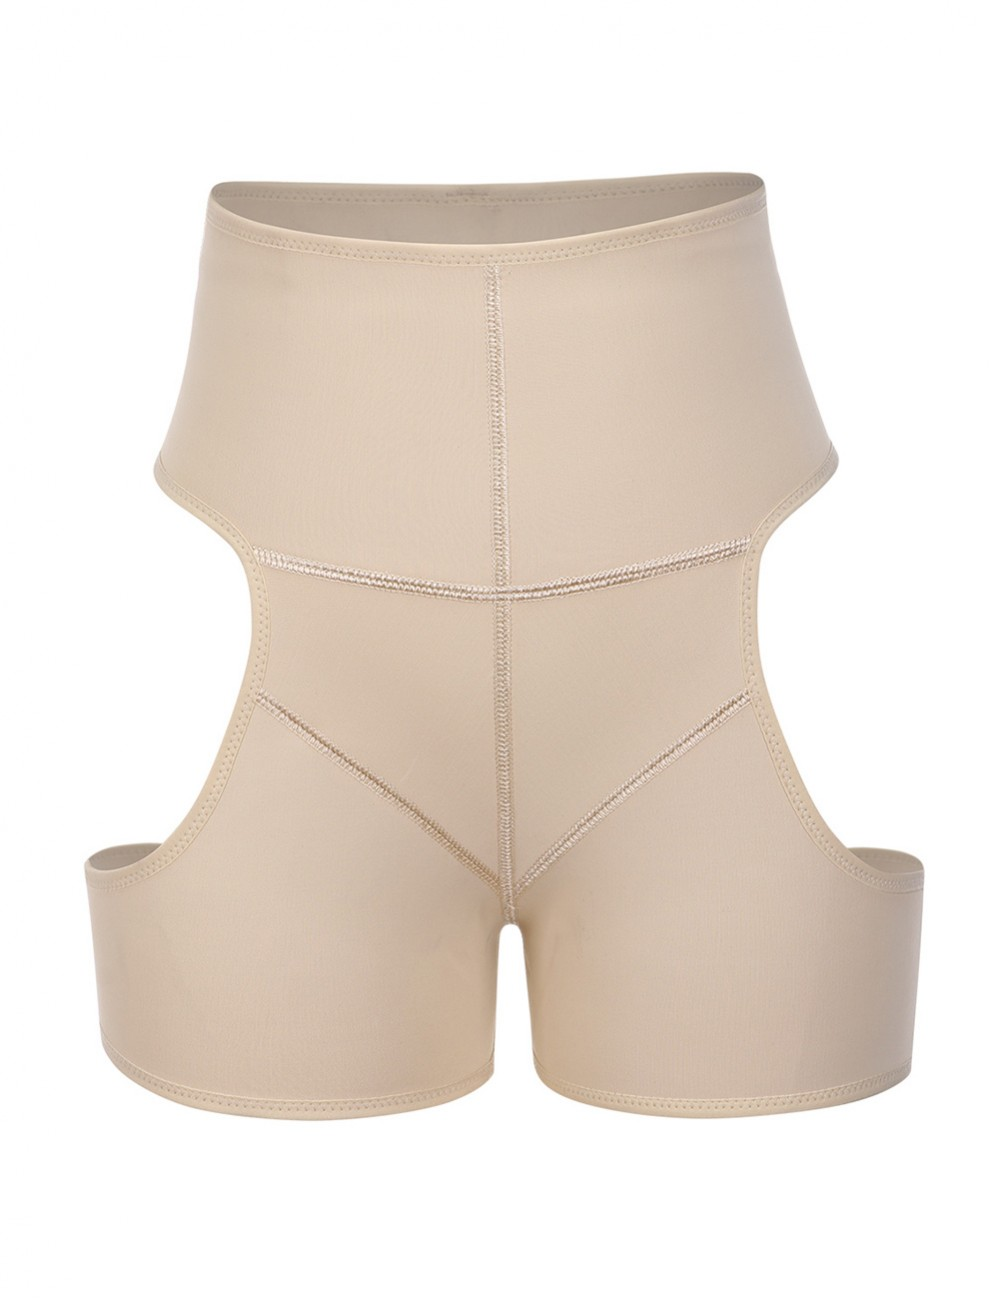 Nude Large Size Shaper Buttock Enhancer Cut Out High Rise Firm Compression